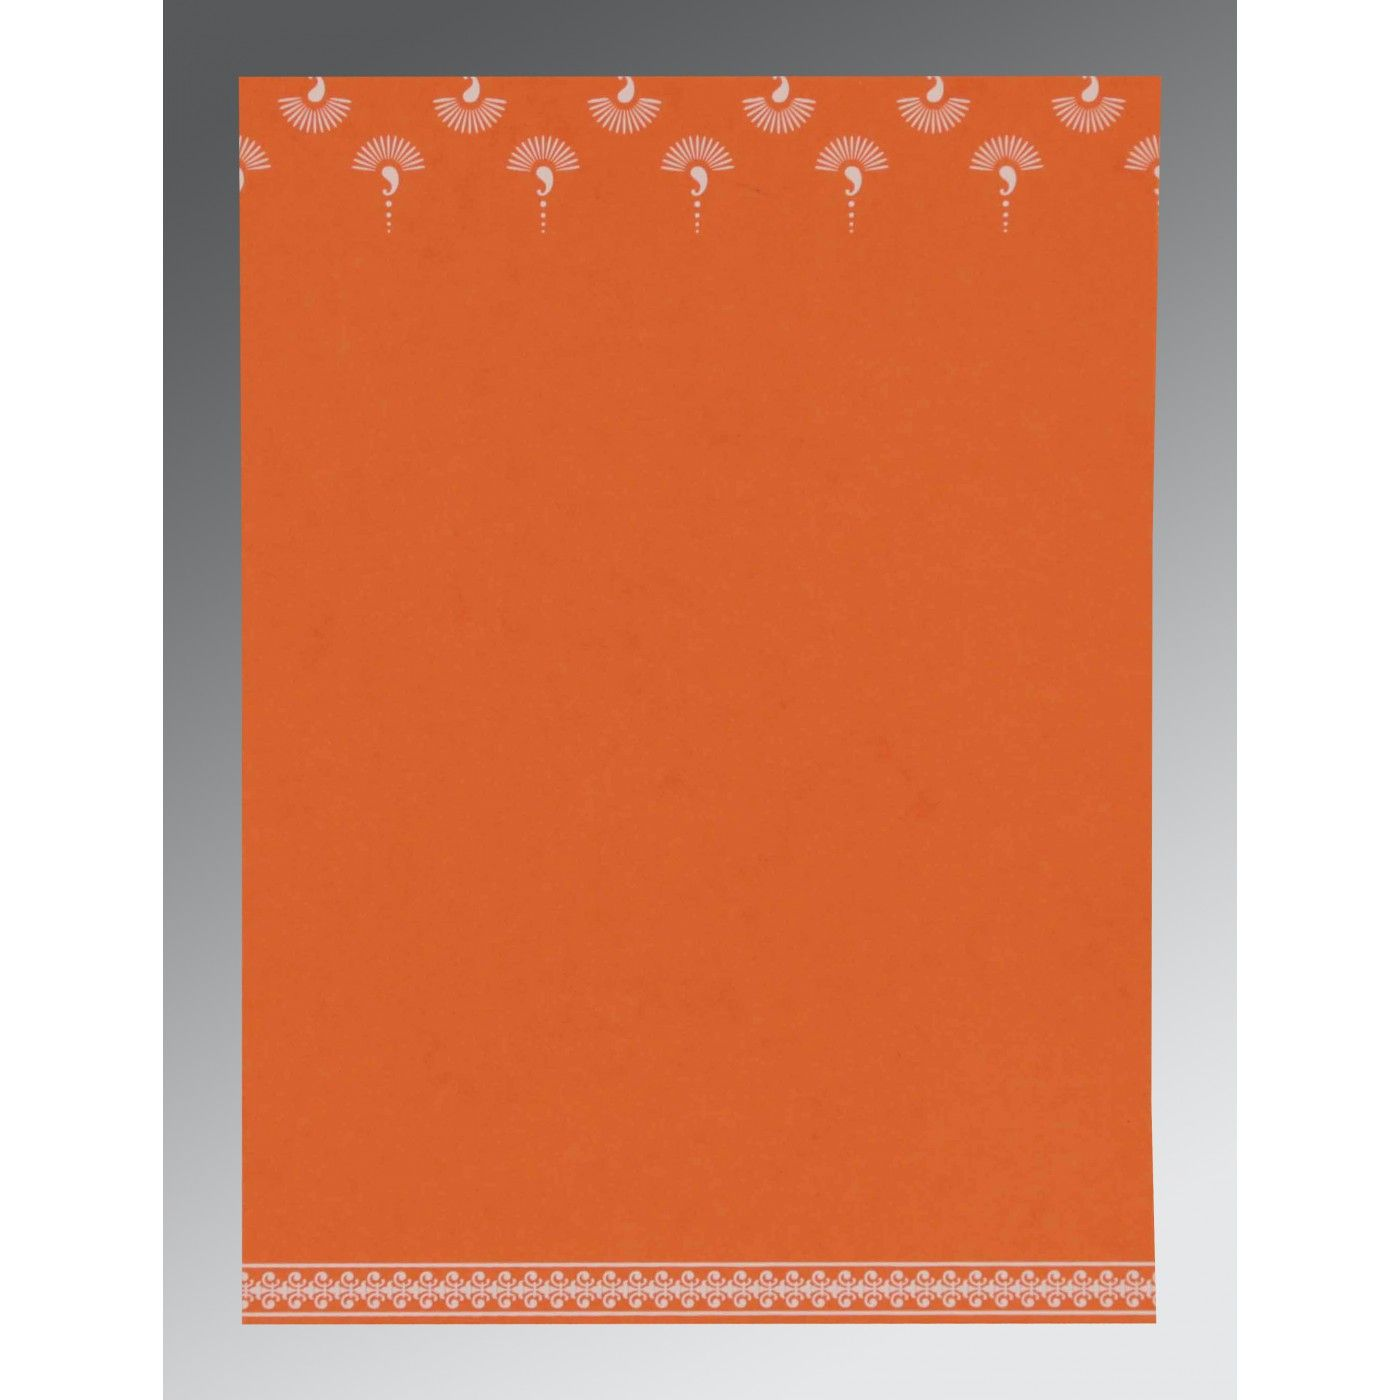 ORANGE MATTE SCREEN PRINTED WEDDING INVITATION : CSO-8247I - IndianWeddingCards